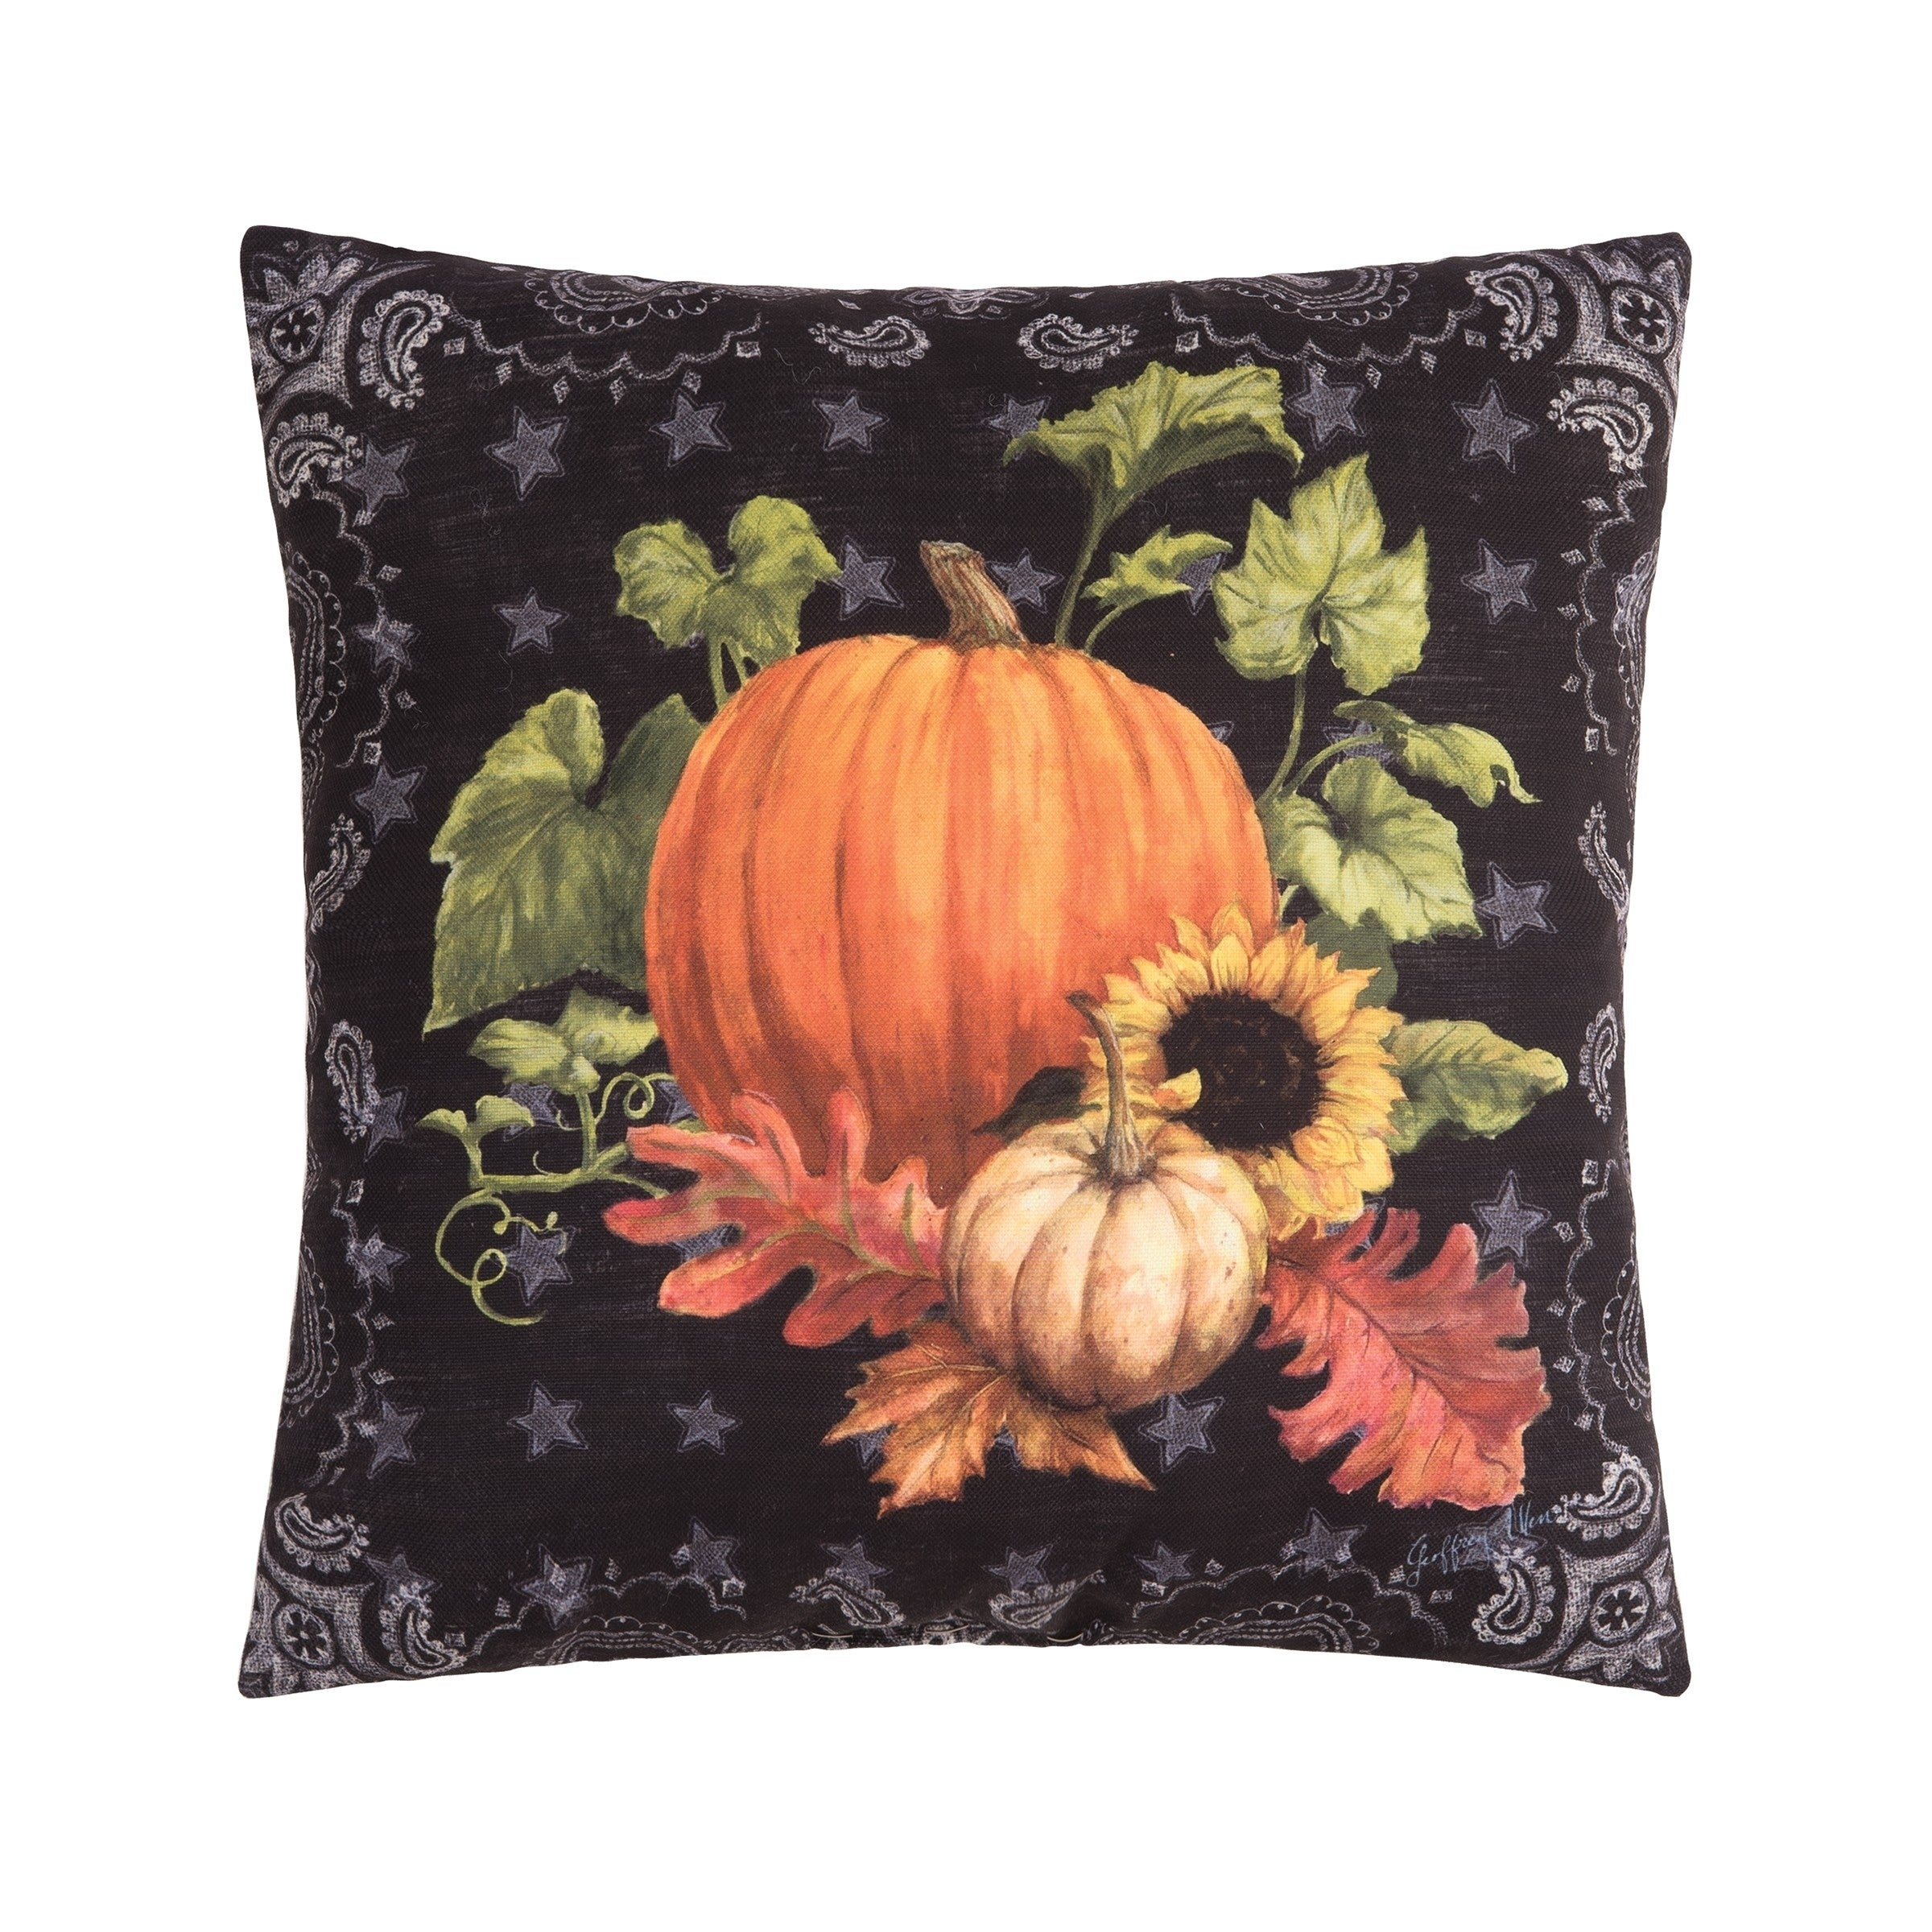 Pumpkin Fall Harvest Thanksgiving Indoor Outdoor 18x18 Accent Decorative Accent Throw Pillow Overstock 30143028